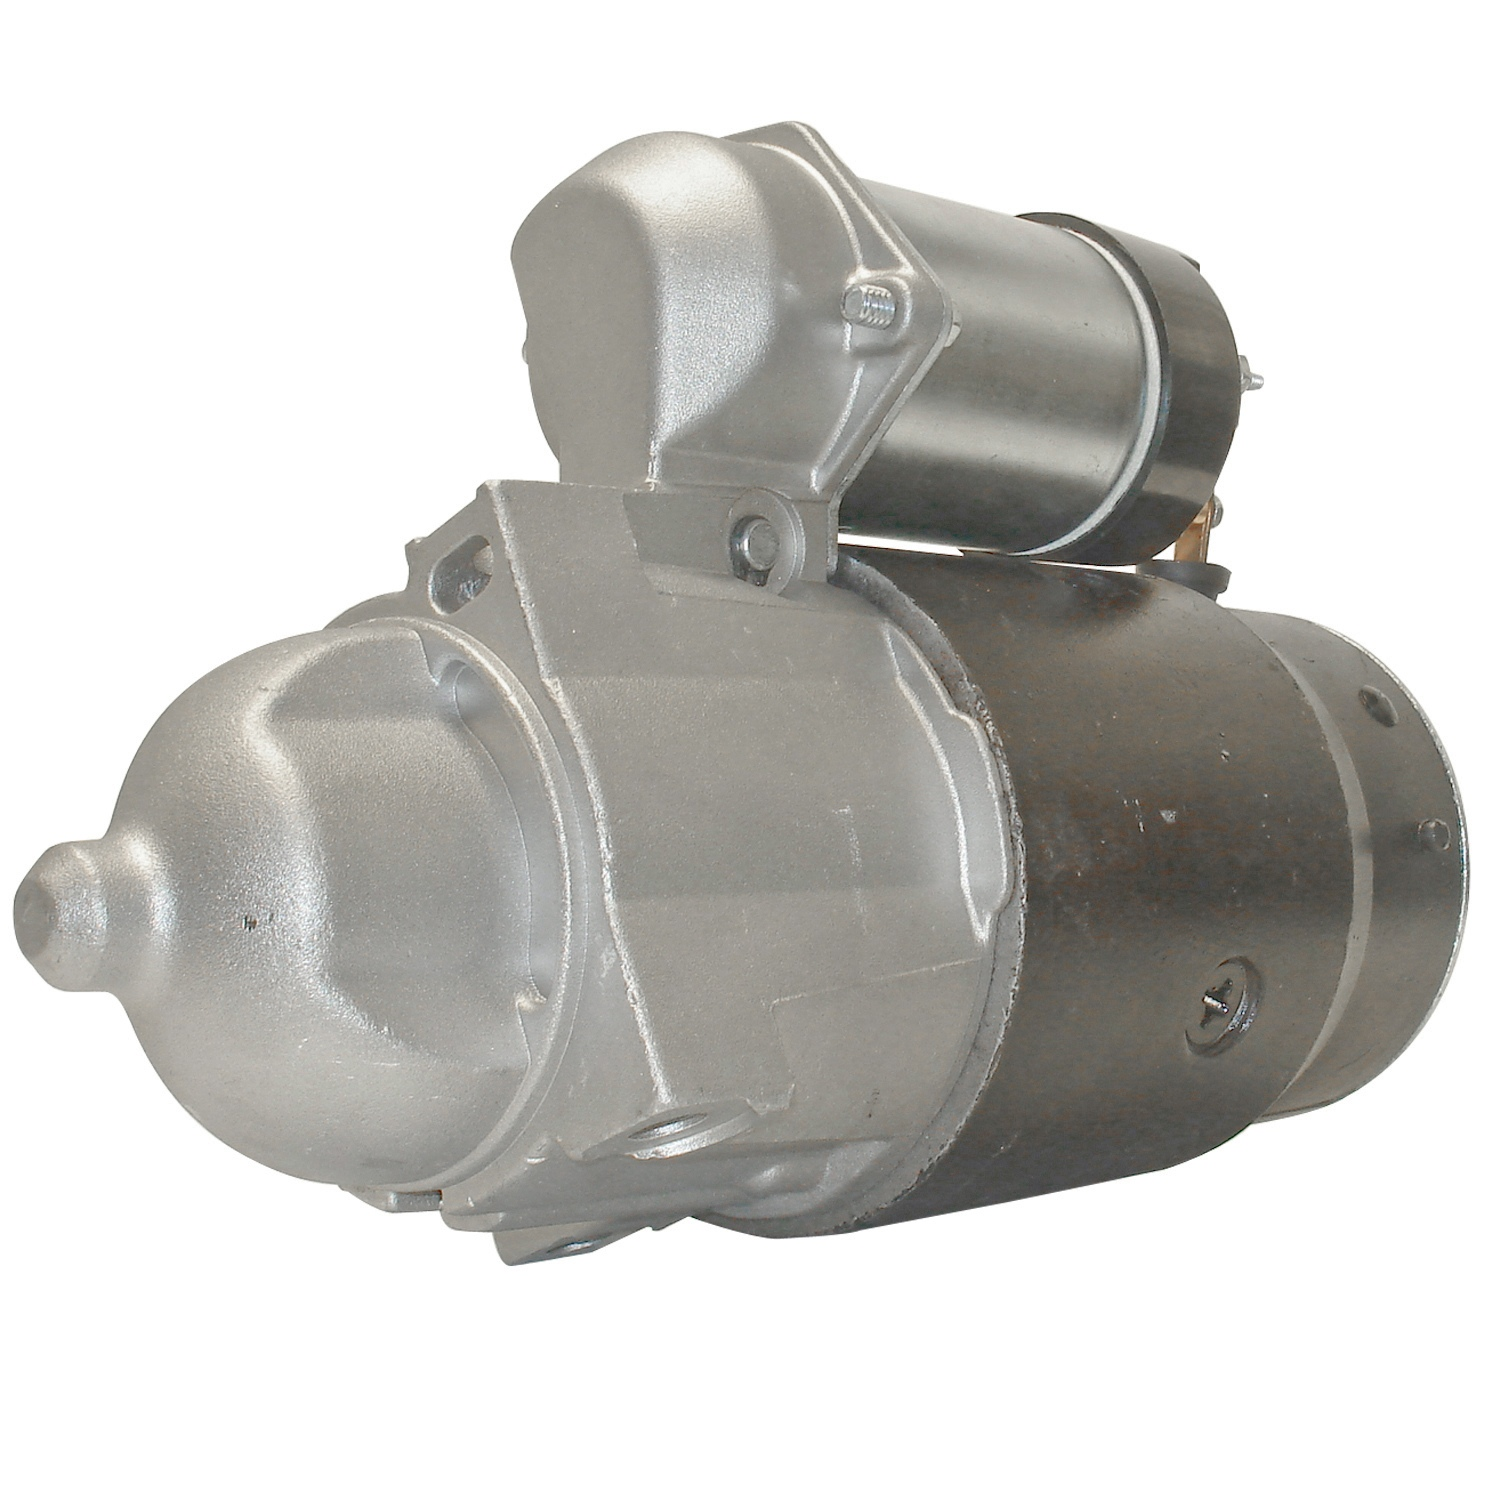 ACDELCO GOLD/PROFESSIONAL - Reman Starter Motor - DCC 336-1822